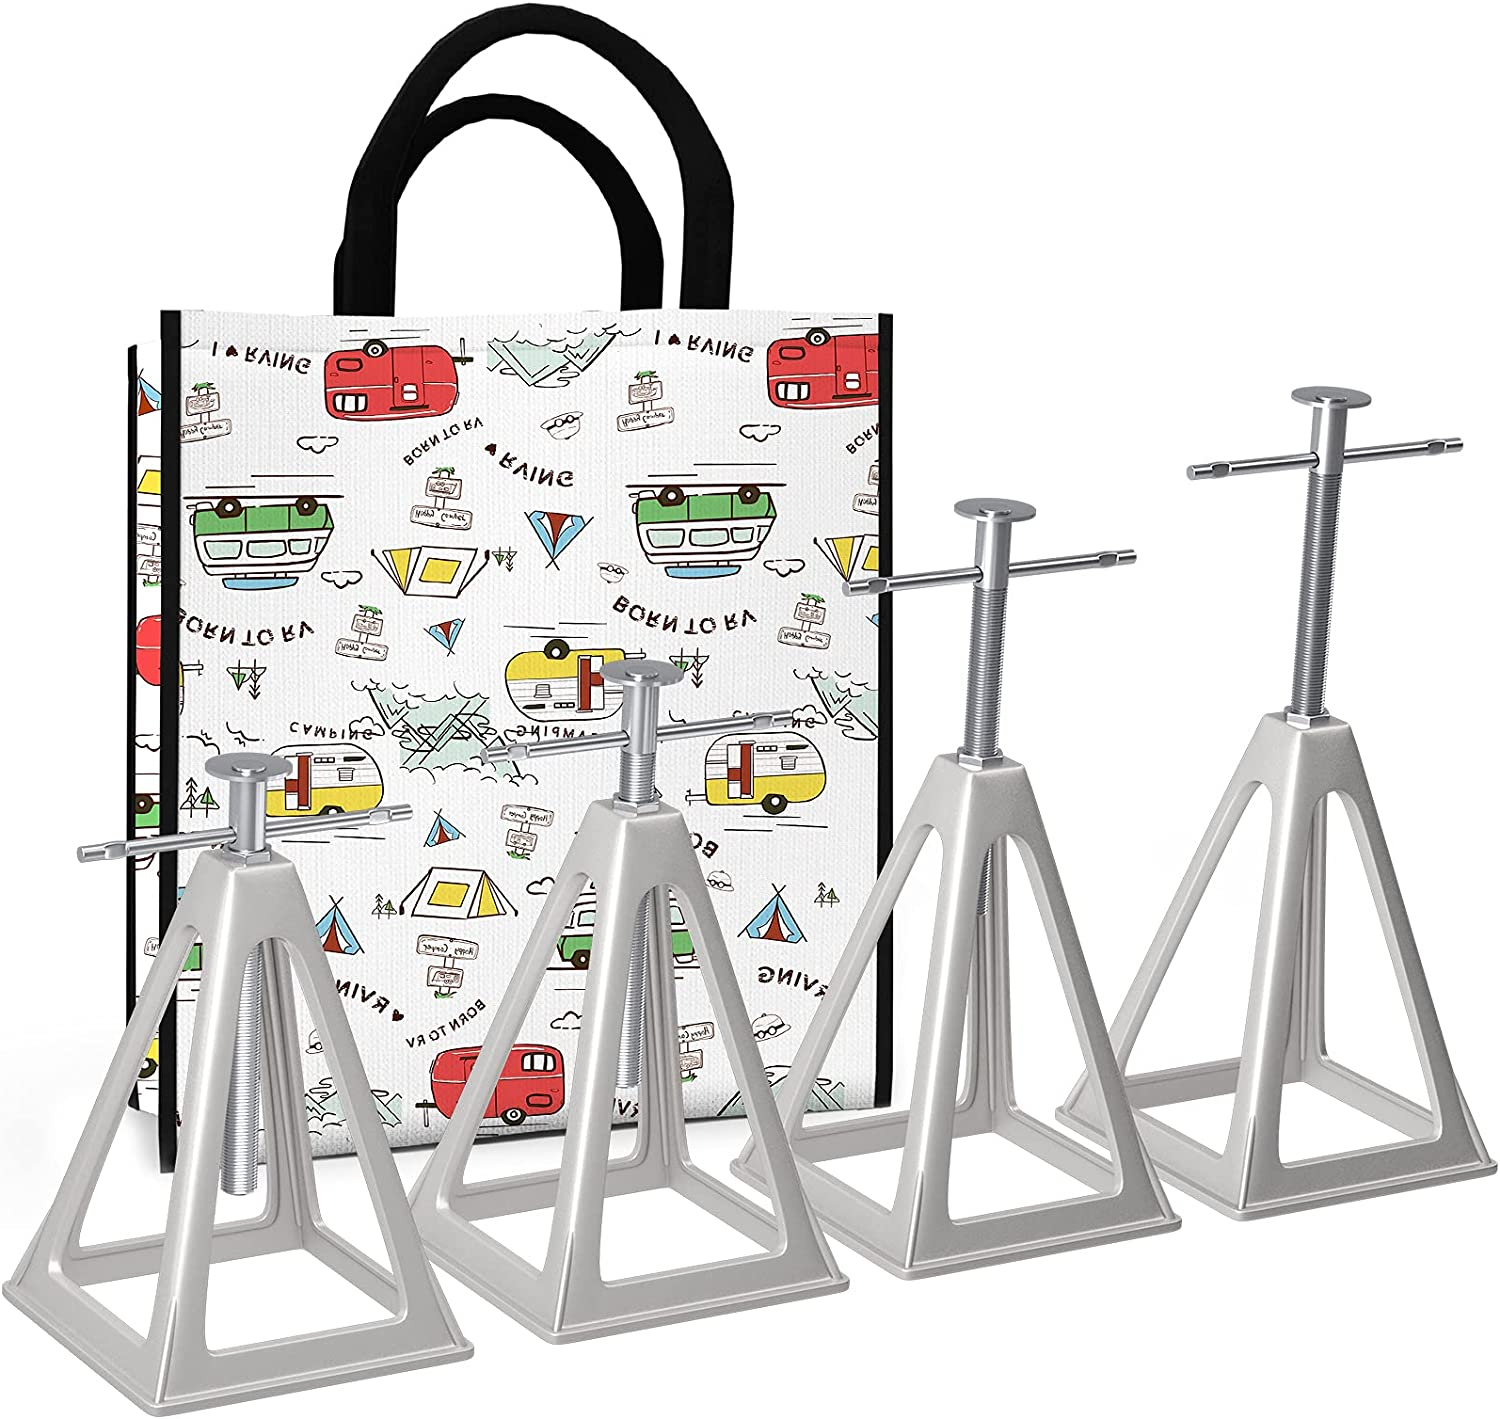 RVMATE Stack Jack 4 Pack for Stabilizati Trailer New York Mall and RV Camper Max 86% OFF